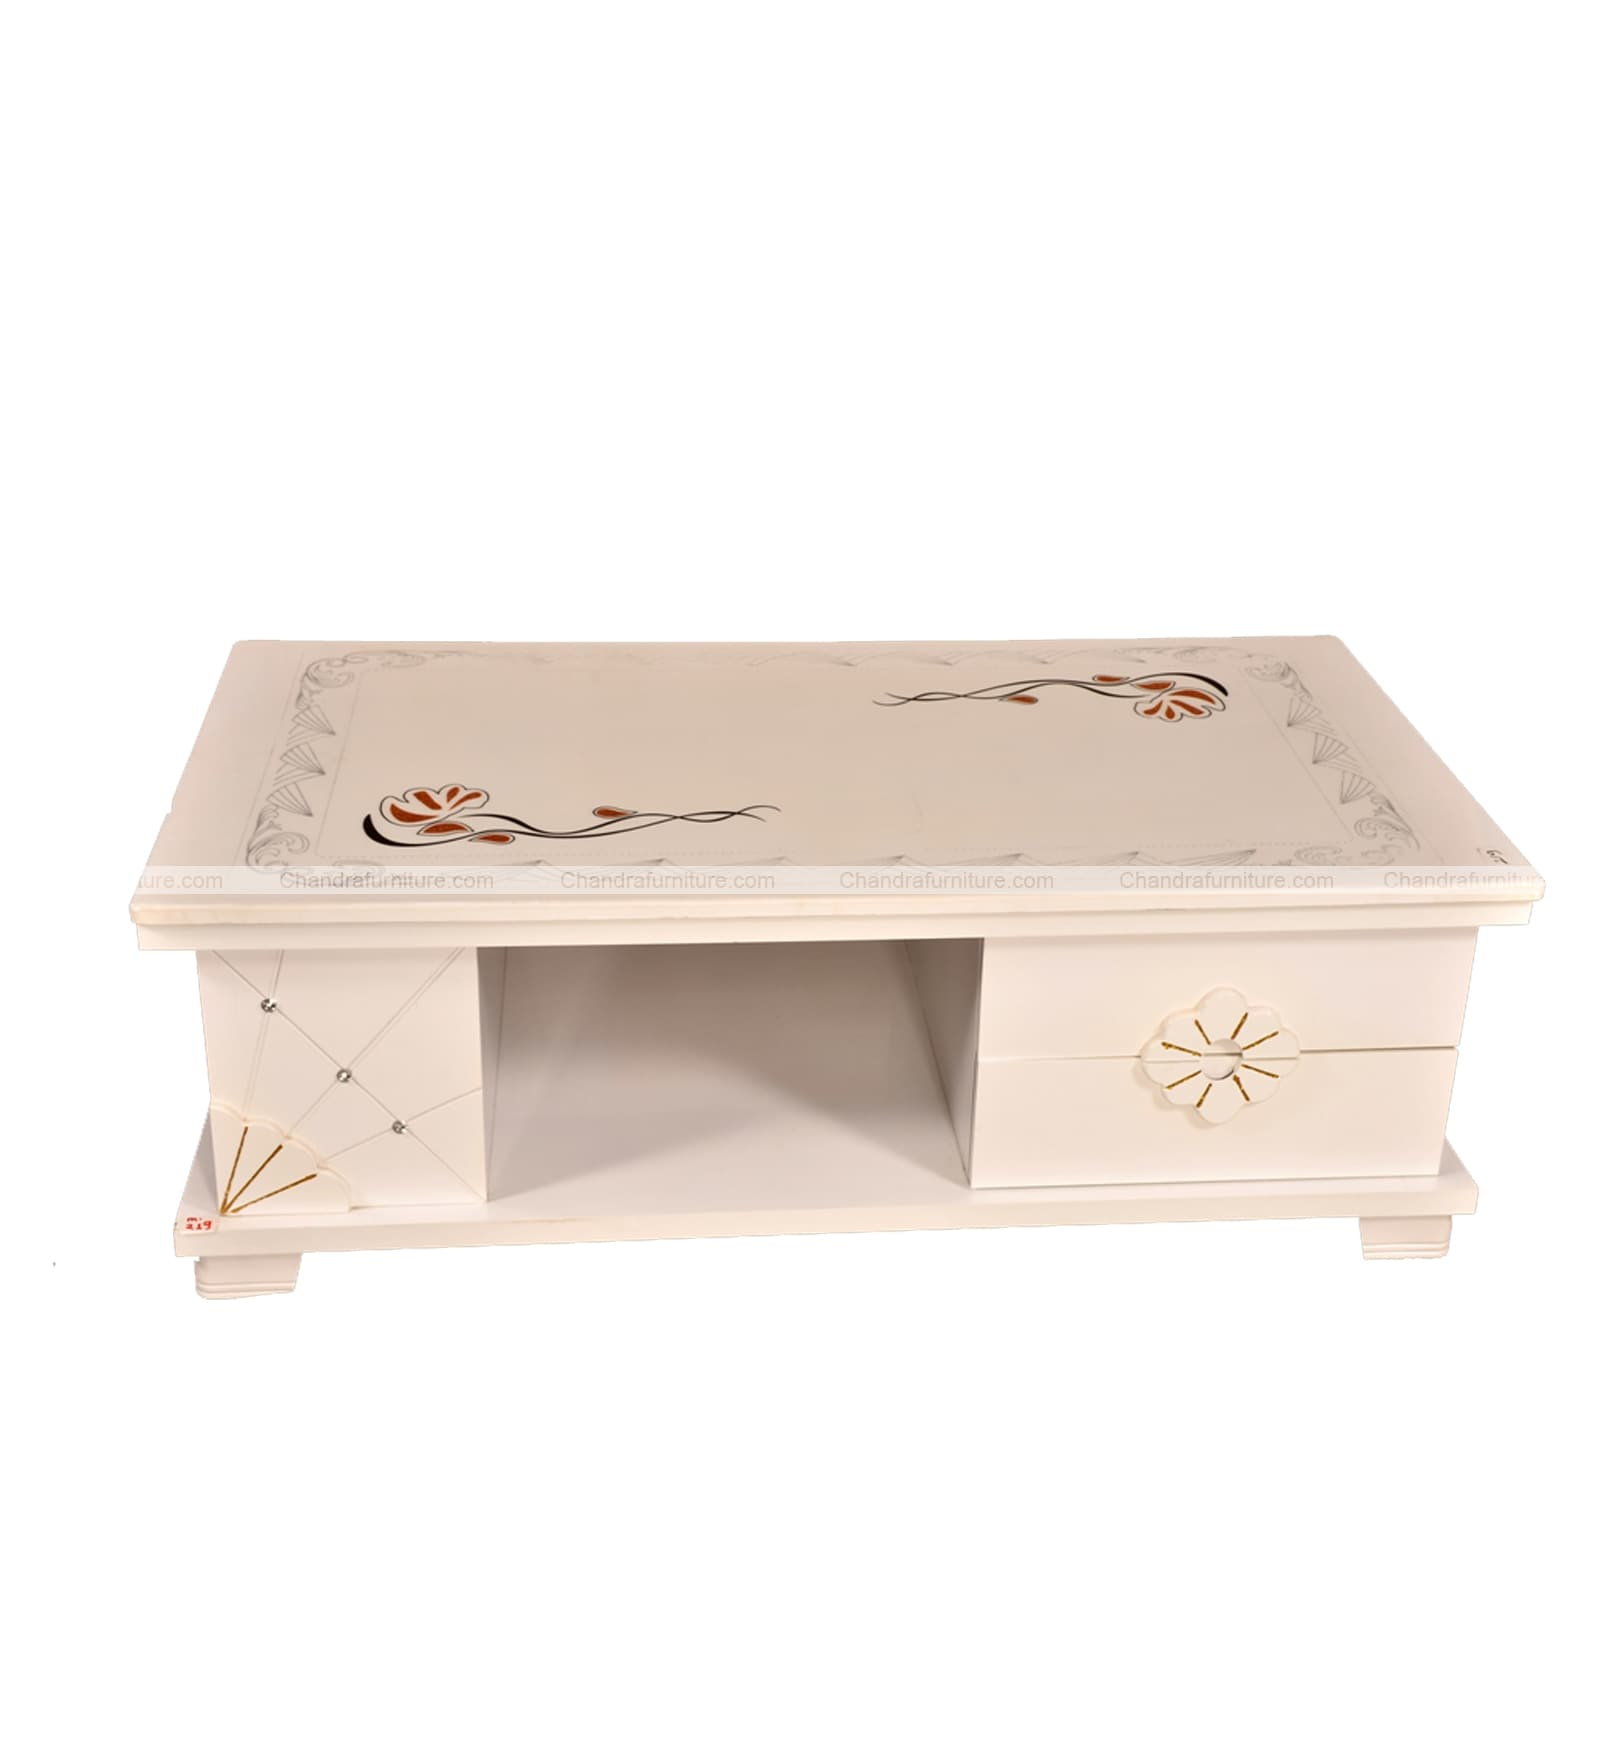 CHANDRA FURNITURE CENTER TABLE  219 (Marble)